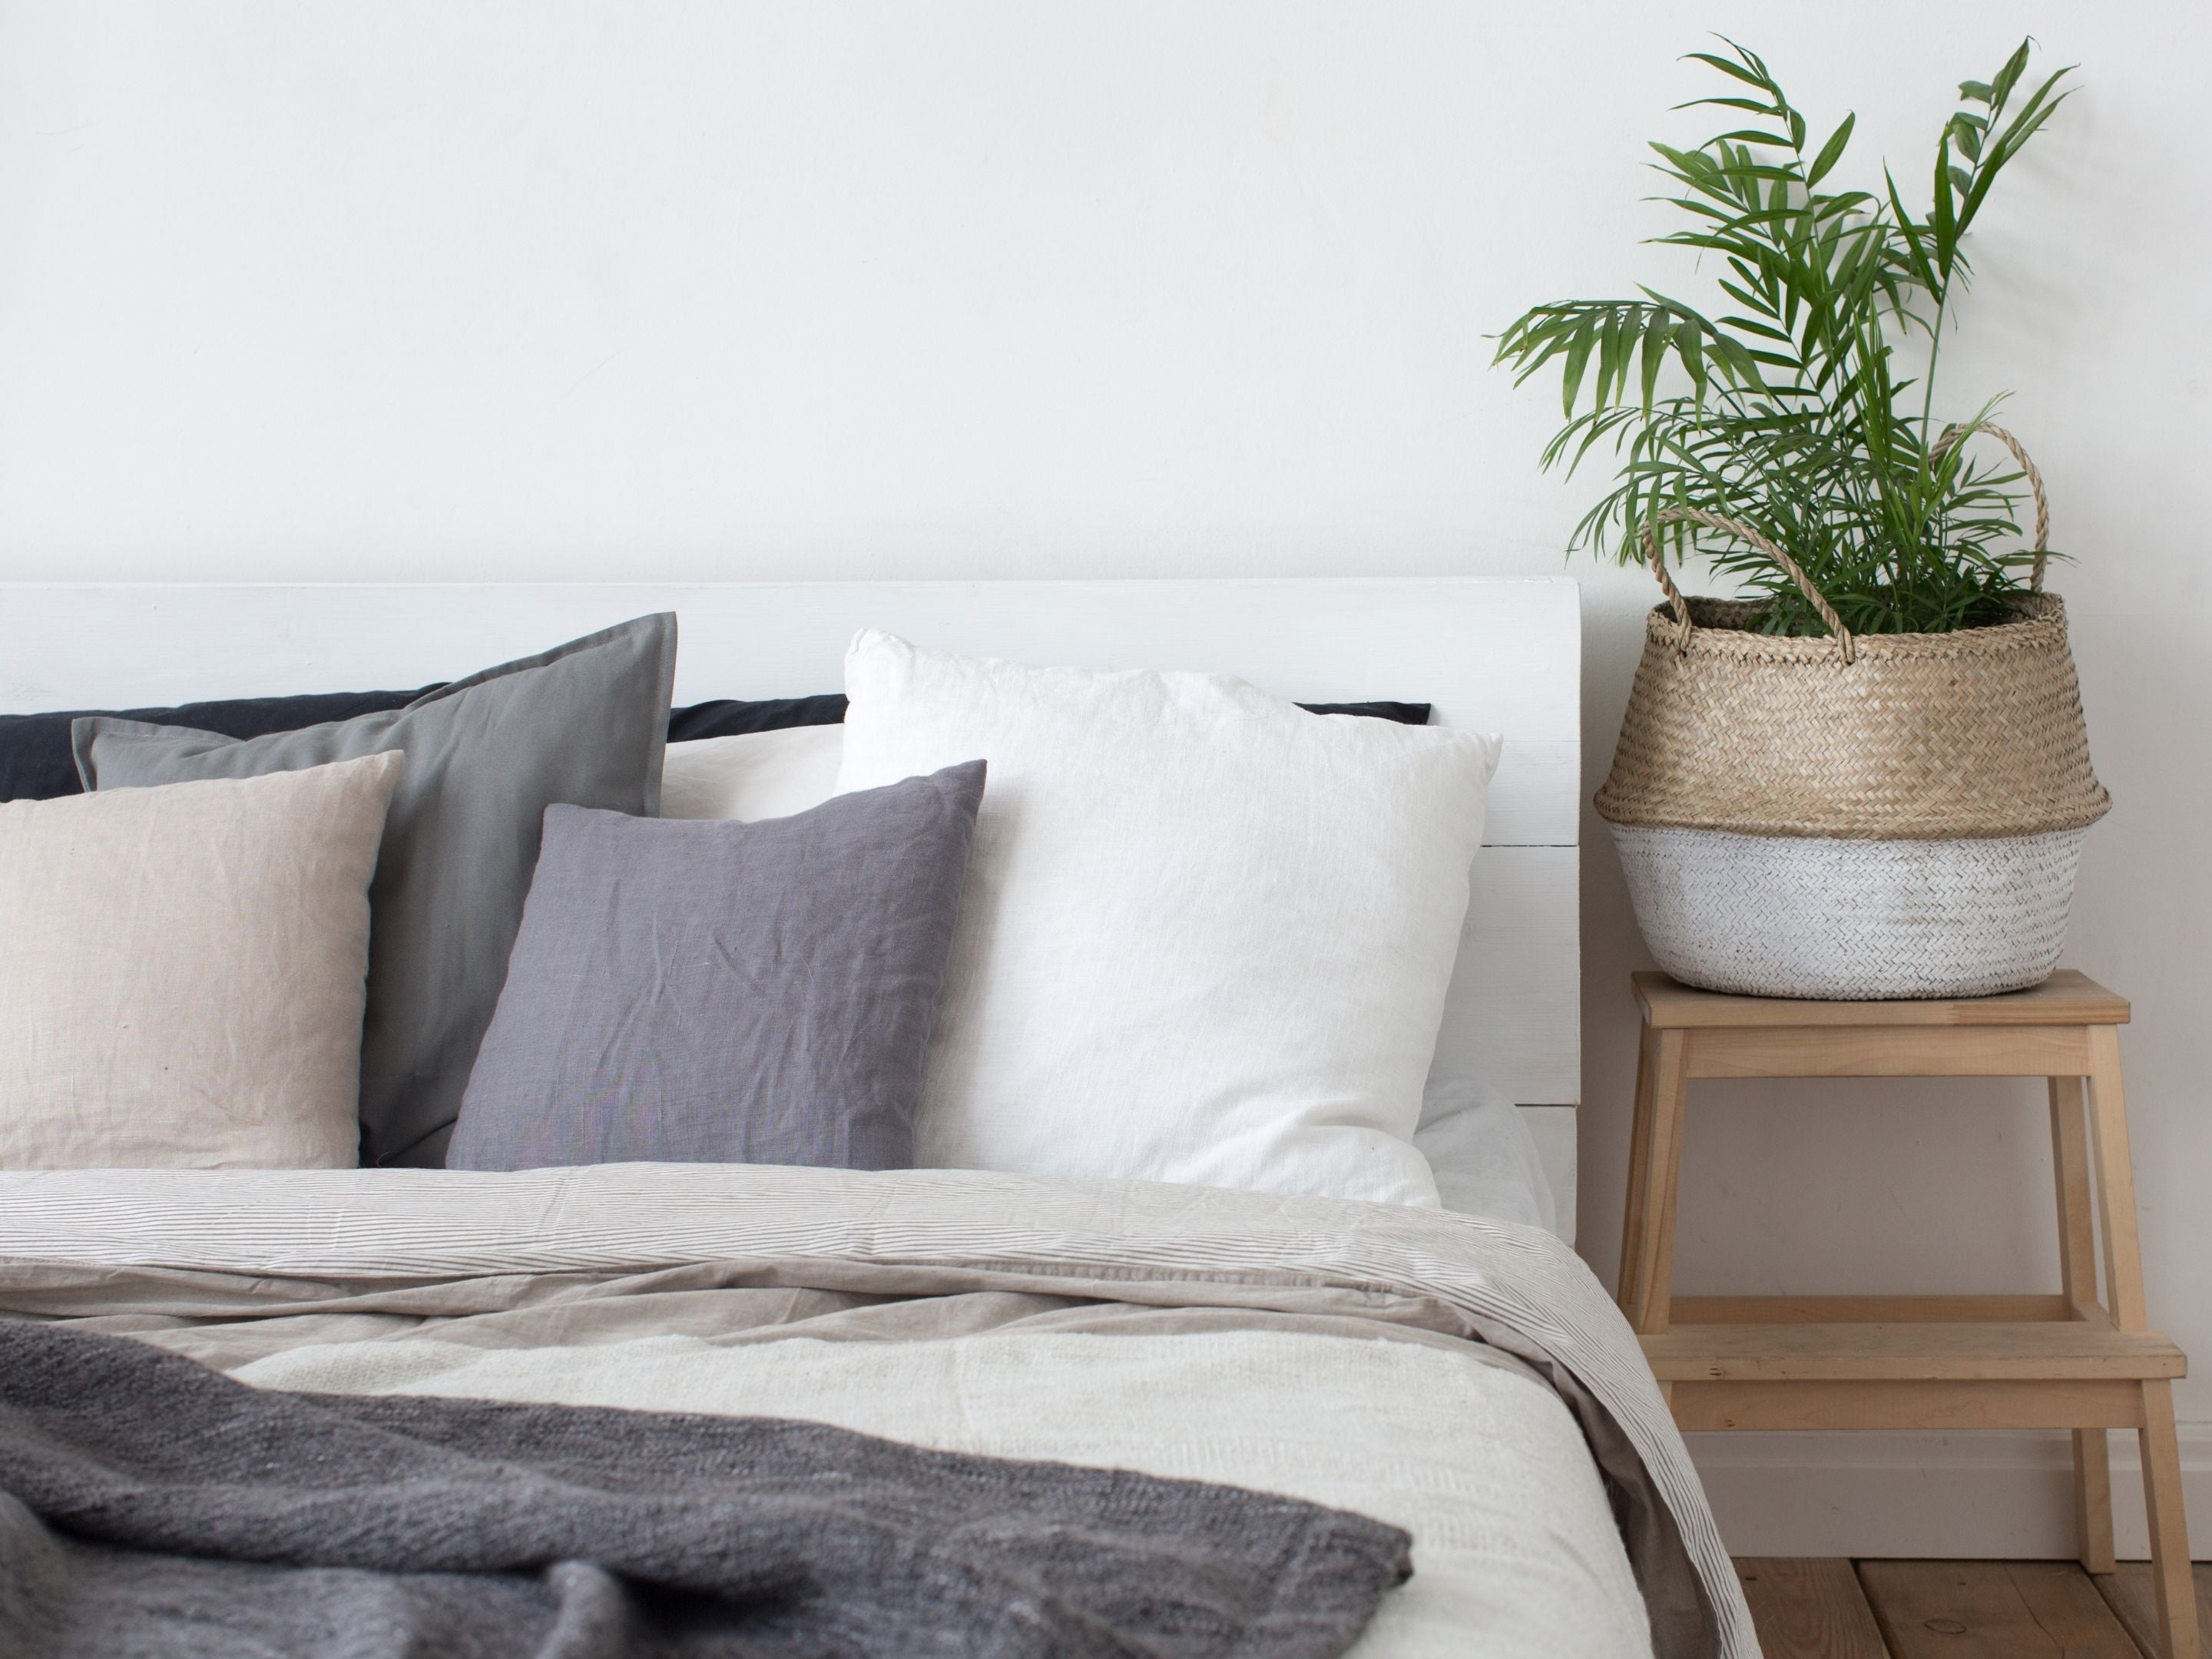 Linen pillowcases and bedding on a made bed